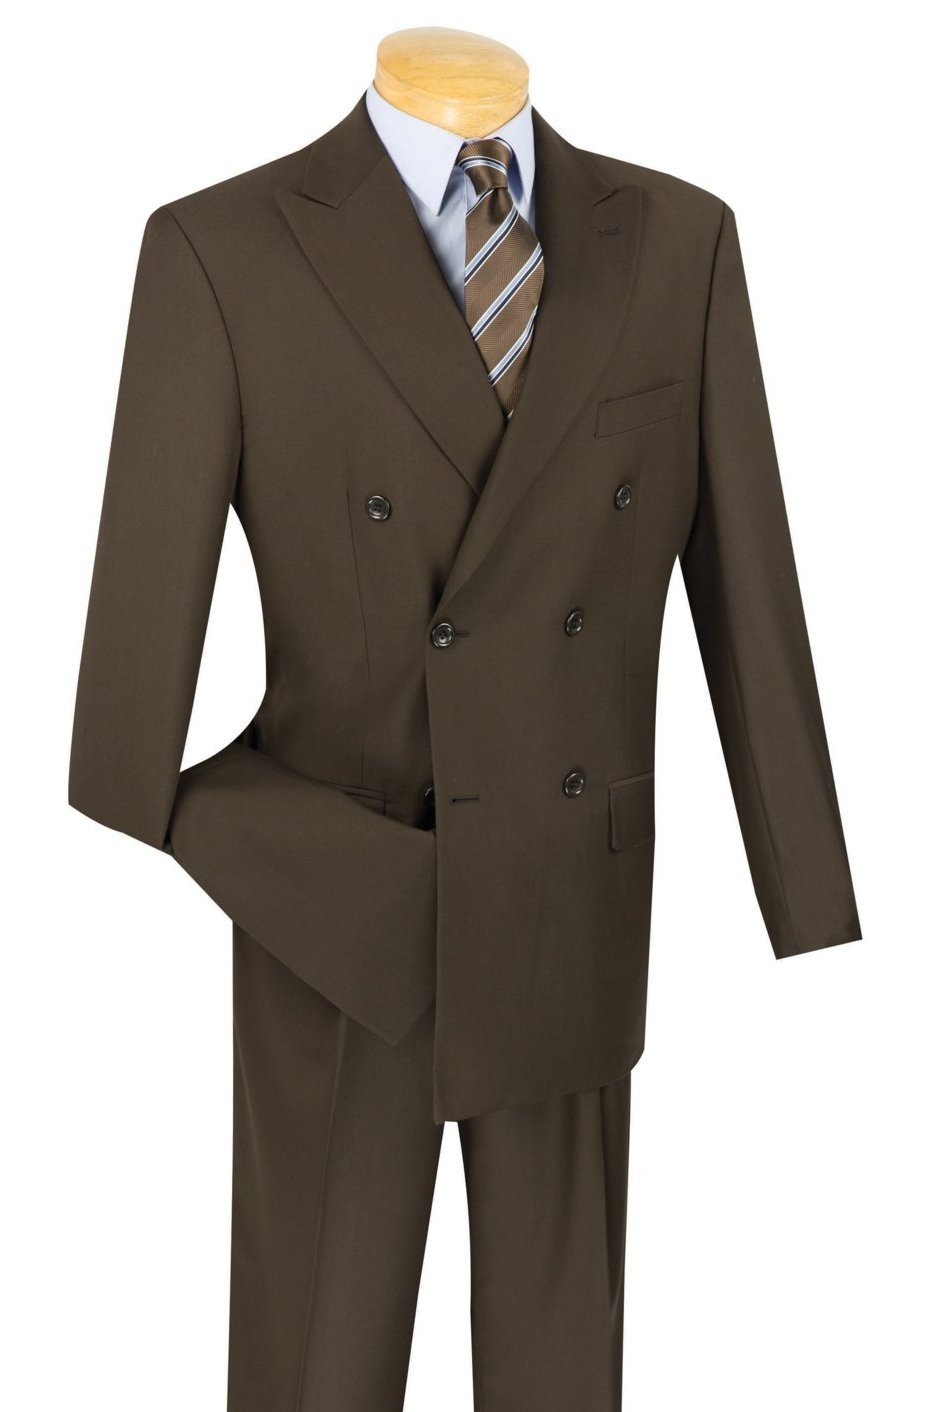 Ramses Collection - Double Breasted Suit 2 Piece Regular Fit in Brown - Mens Suits